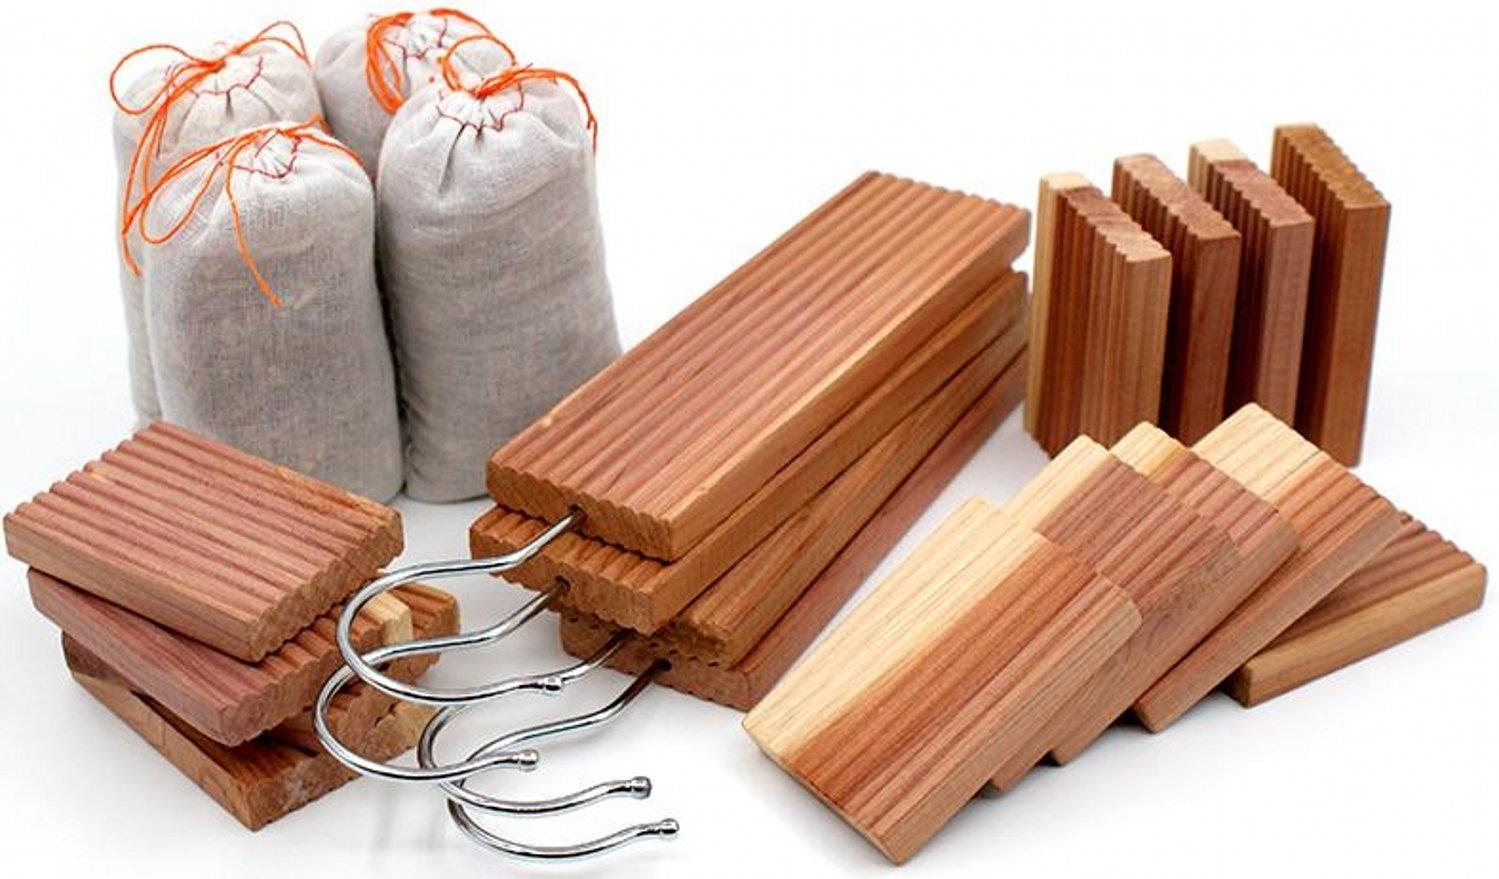 Venxic Moth Repellent Aromatic Cedar Wood Chips Hangups and Cedar Sachets Moths Protection for Clothing Closets Drawers